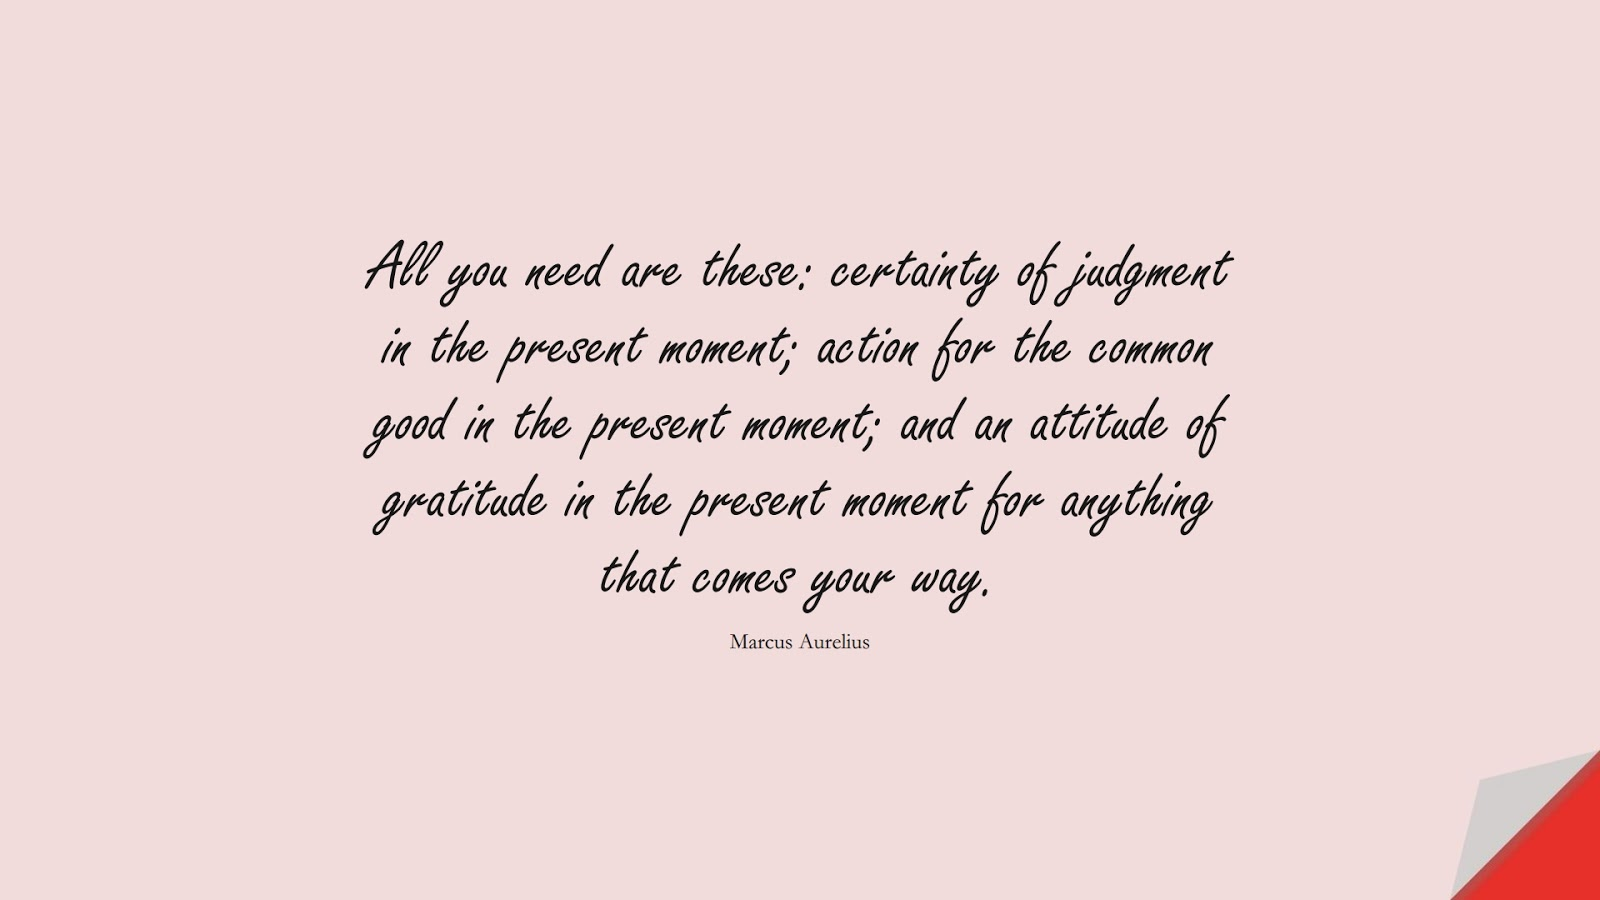 All you need are these: certainty of judgment in the present moment; action for the common good in the present moment; and an attitude of gratitude in the present moment for anything that comes your way. (Marcus Aurelius);  #MarcusAureliusQuotes